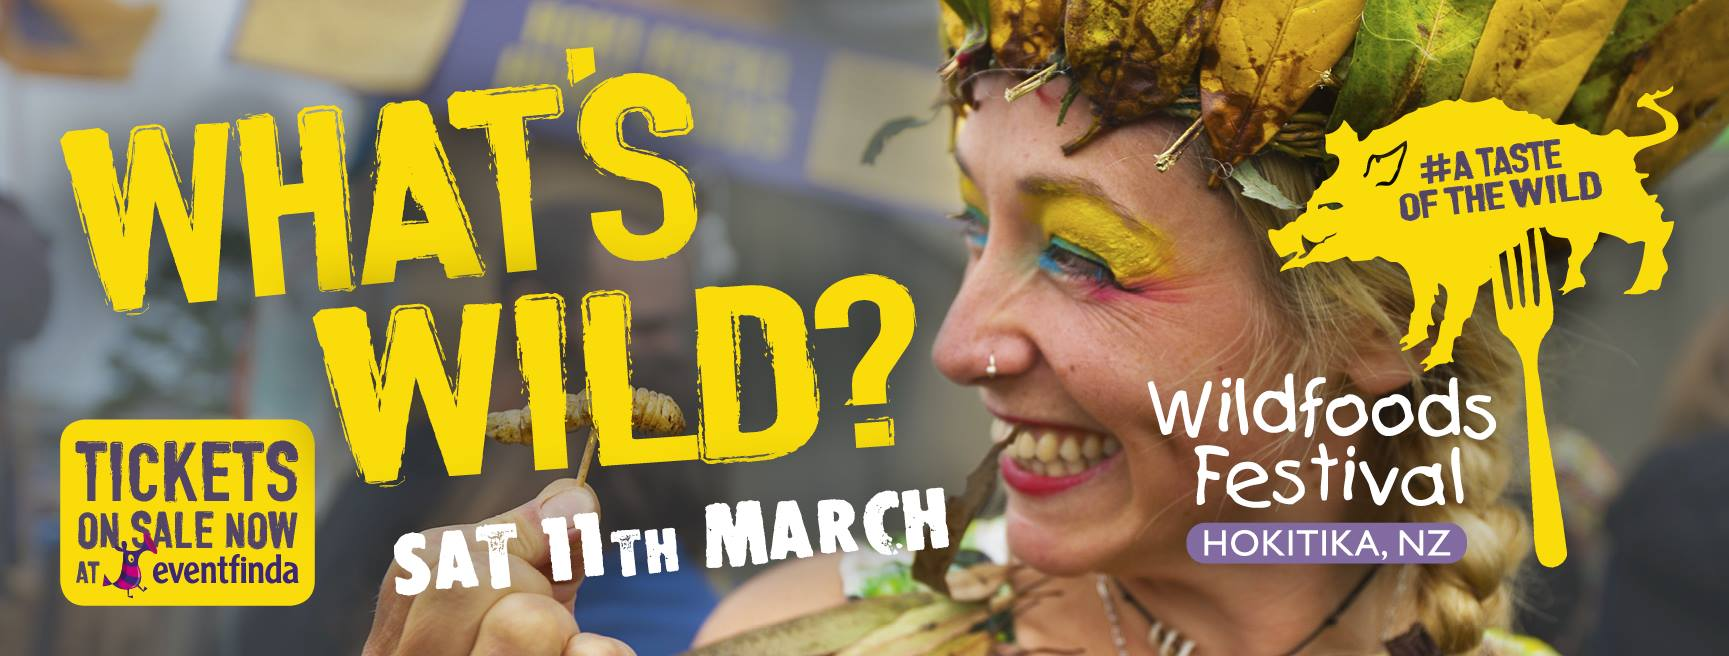 Wild foods festival event banner